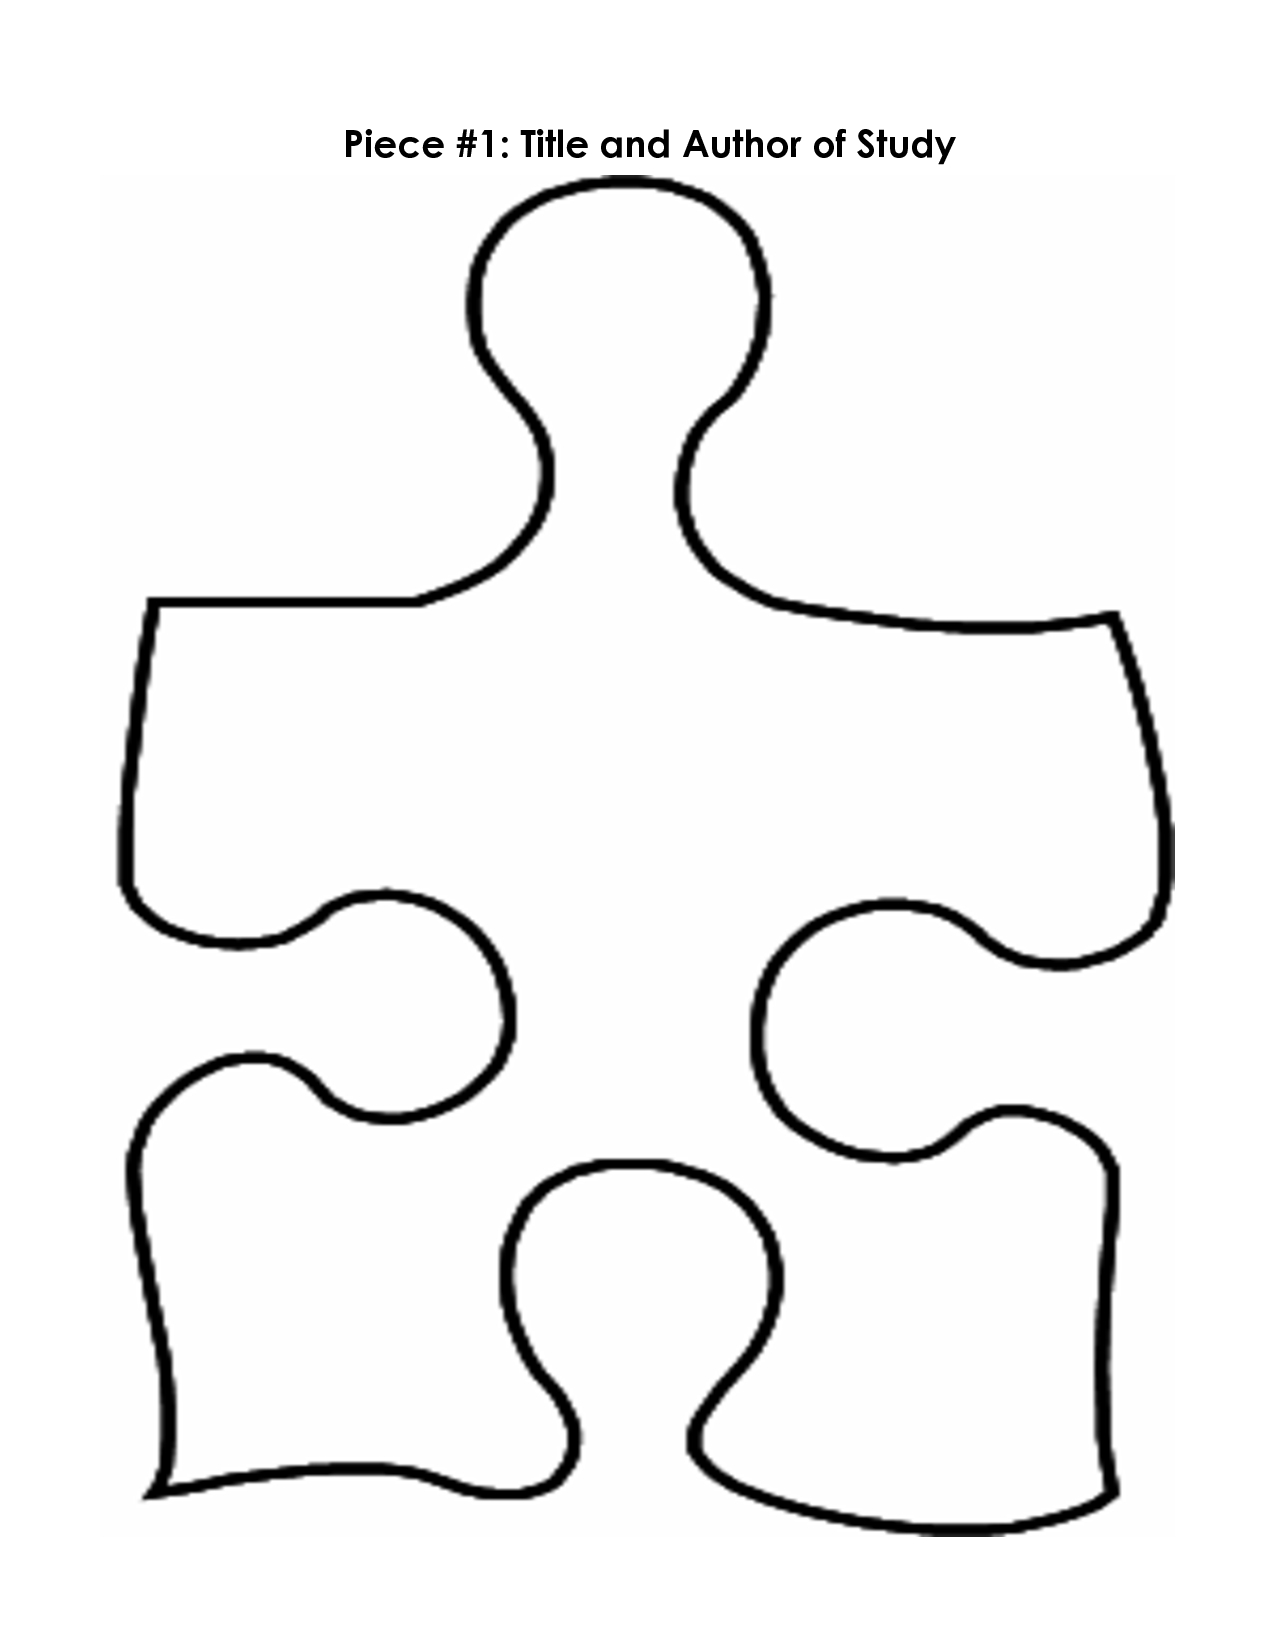 Puzzle Piece Mystery Book Template Pp | Printables | Puzzle Piece - Printable Puzzle Template Free